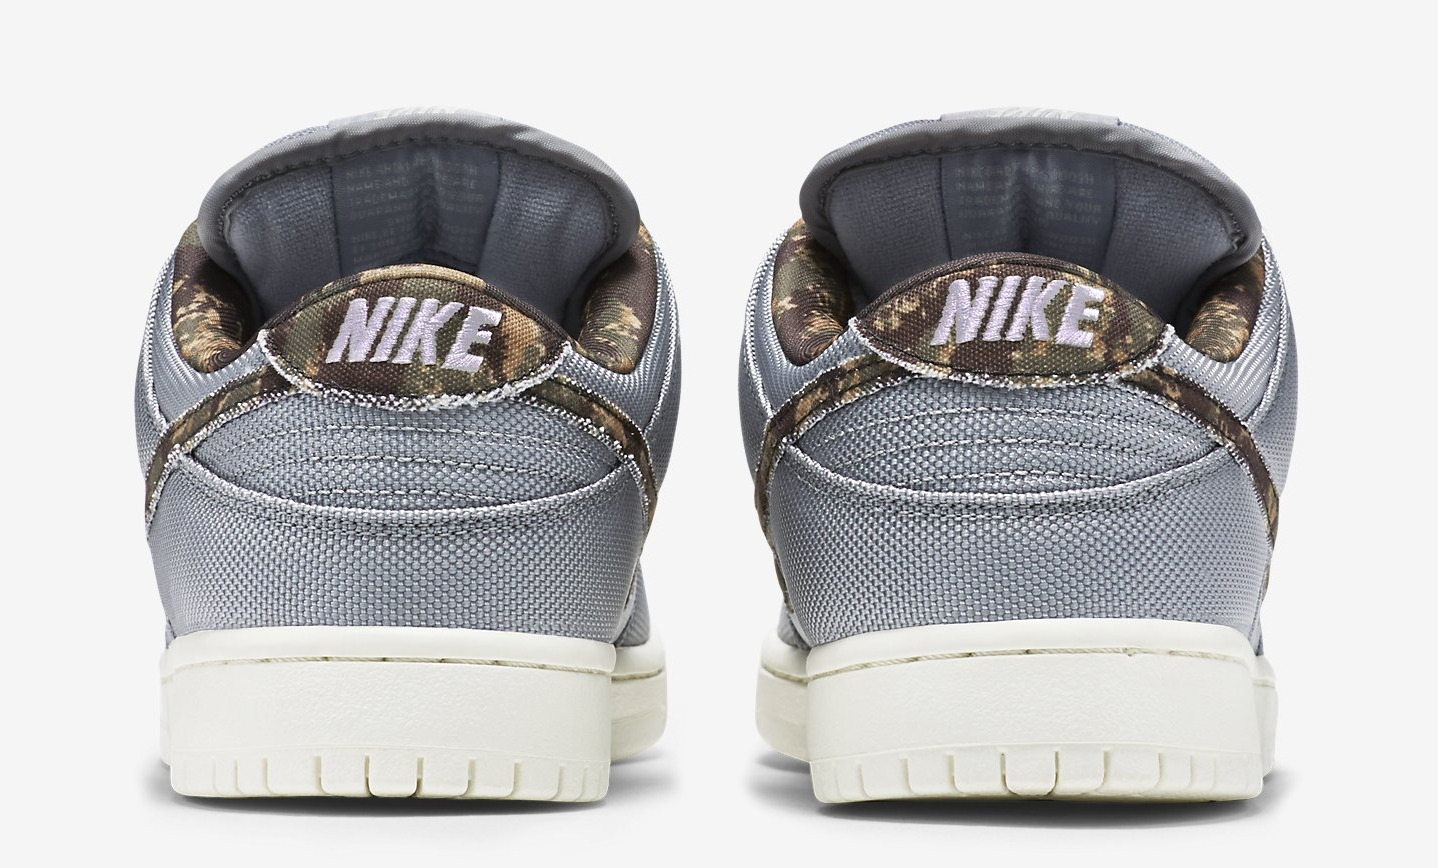 low priced defc4 26d7a A Covert Camo Pair of Nike SB Dunks